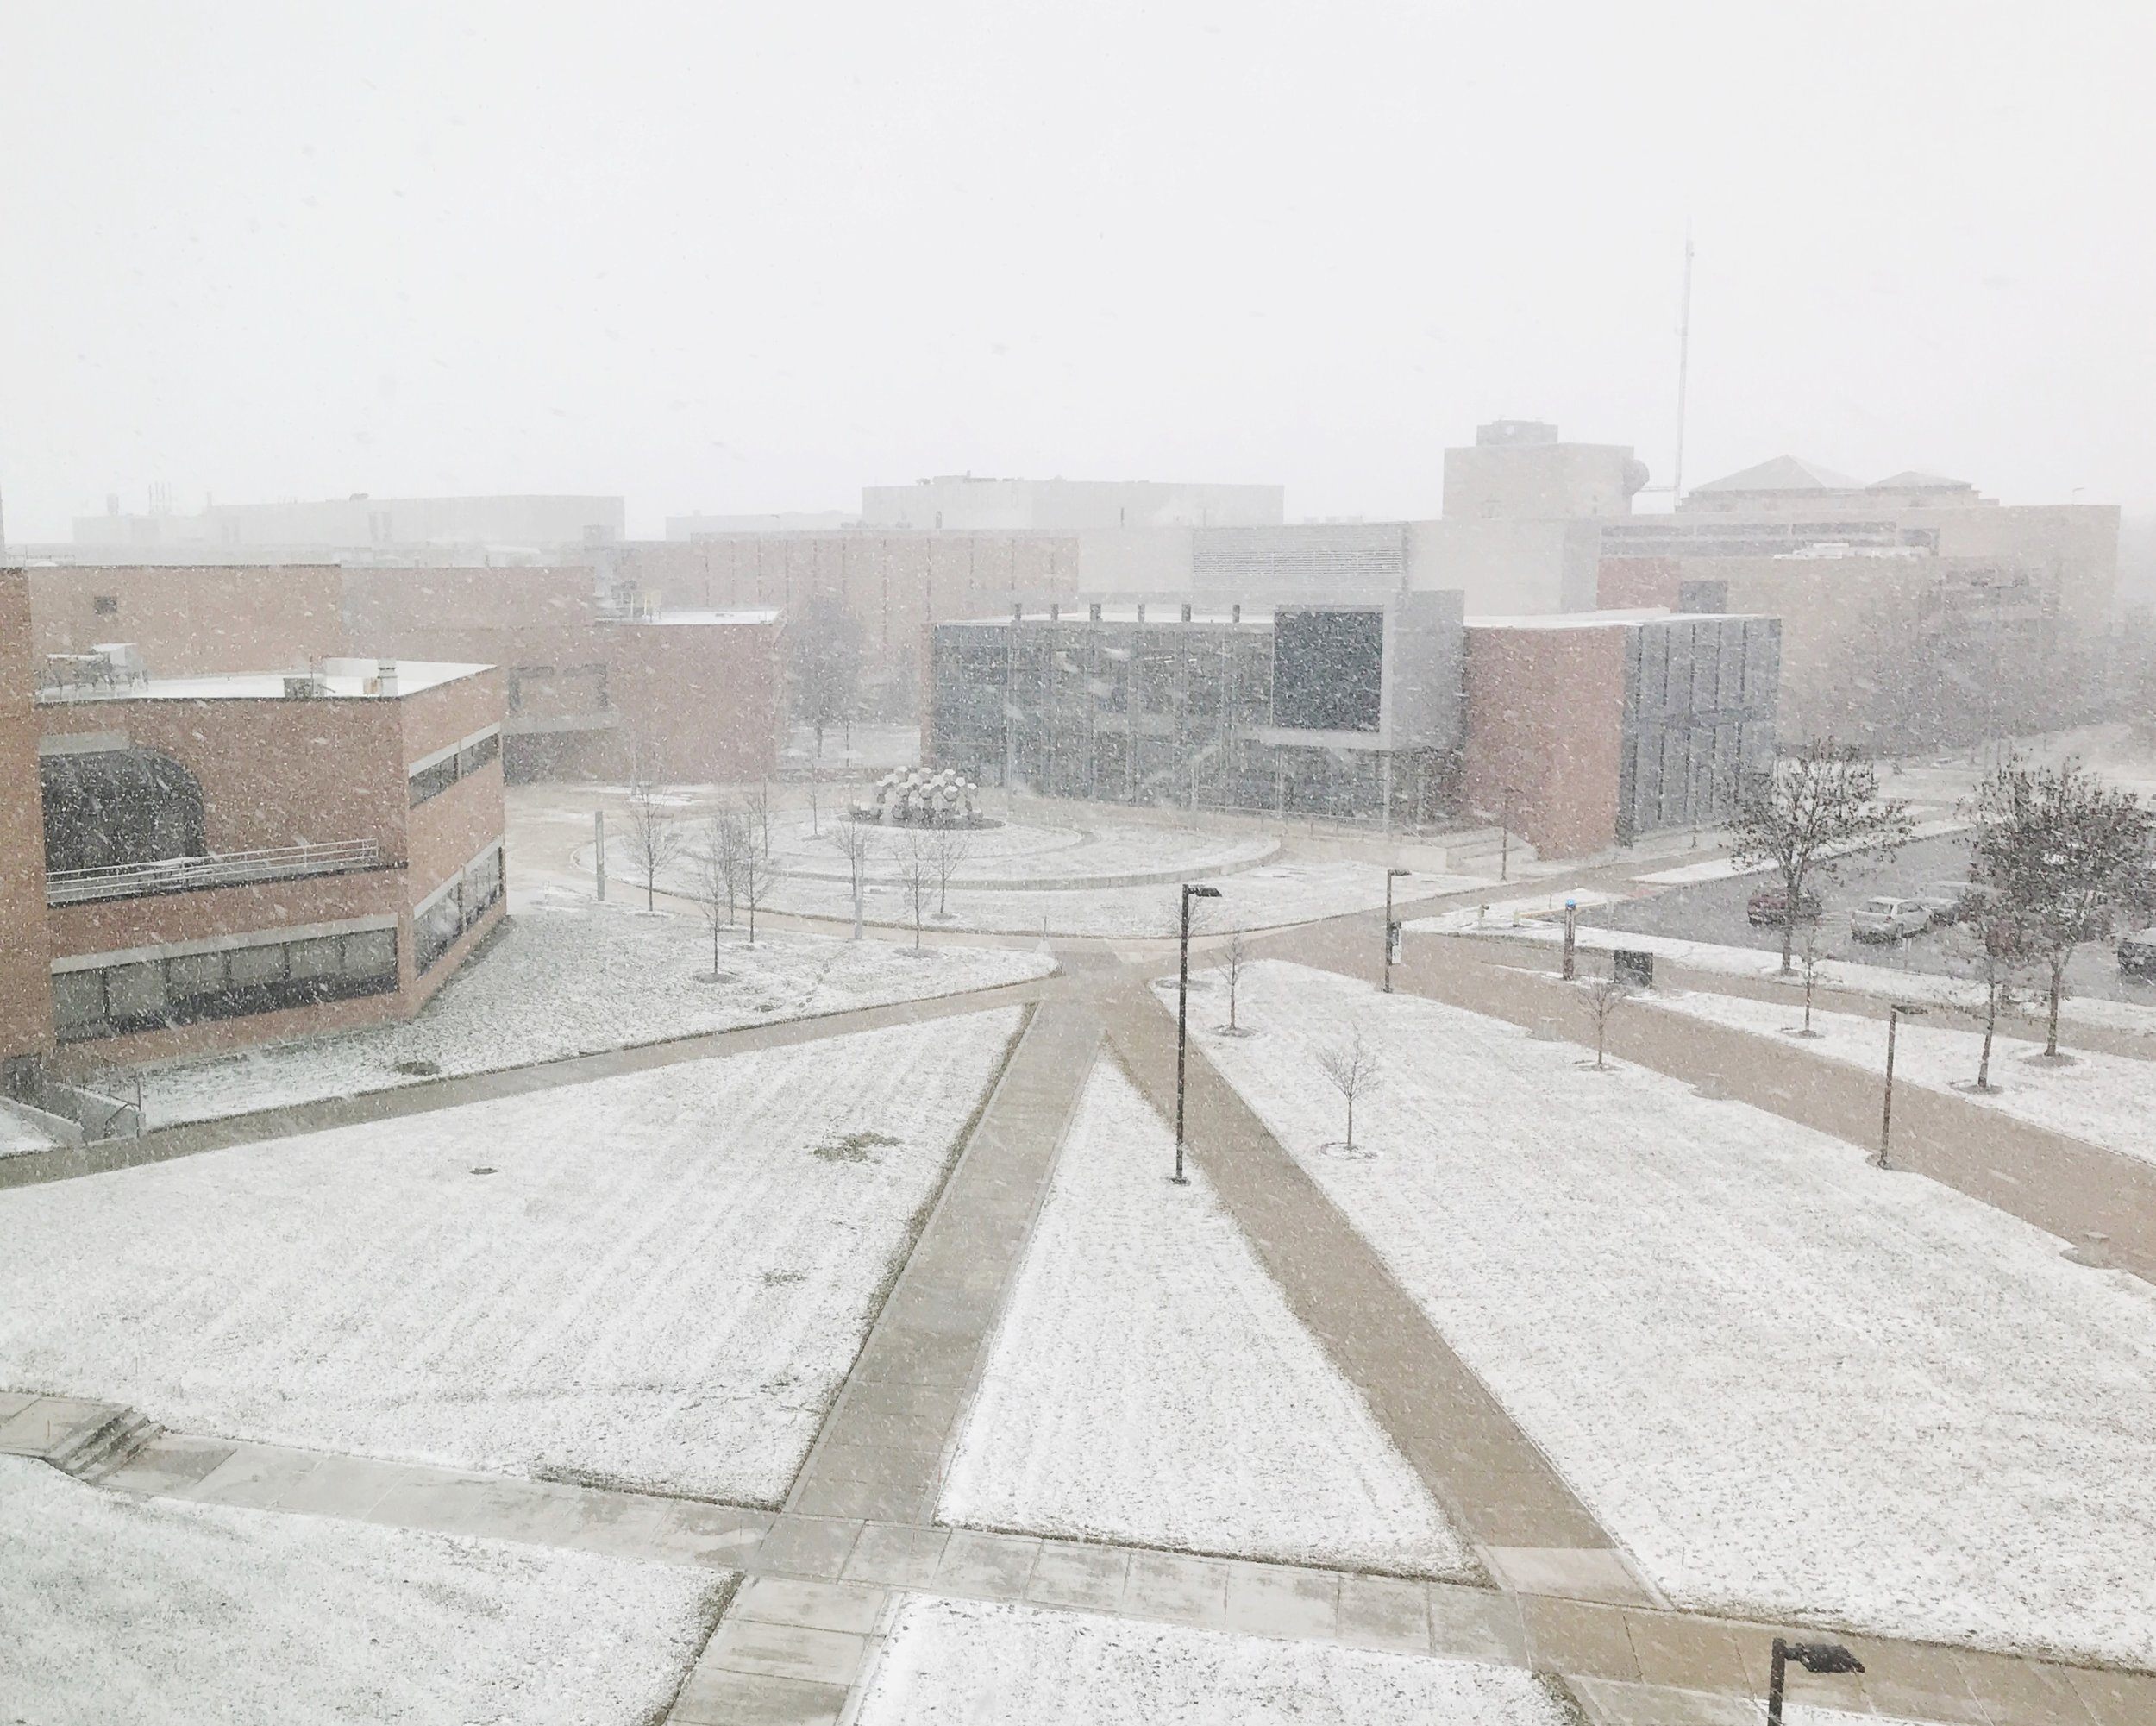 Wright State University in the Snow | TetherAndFly.com